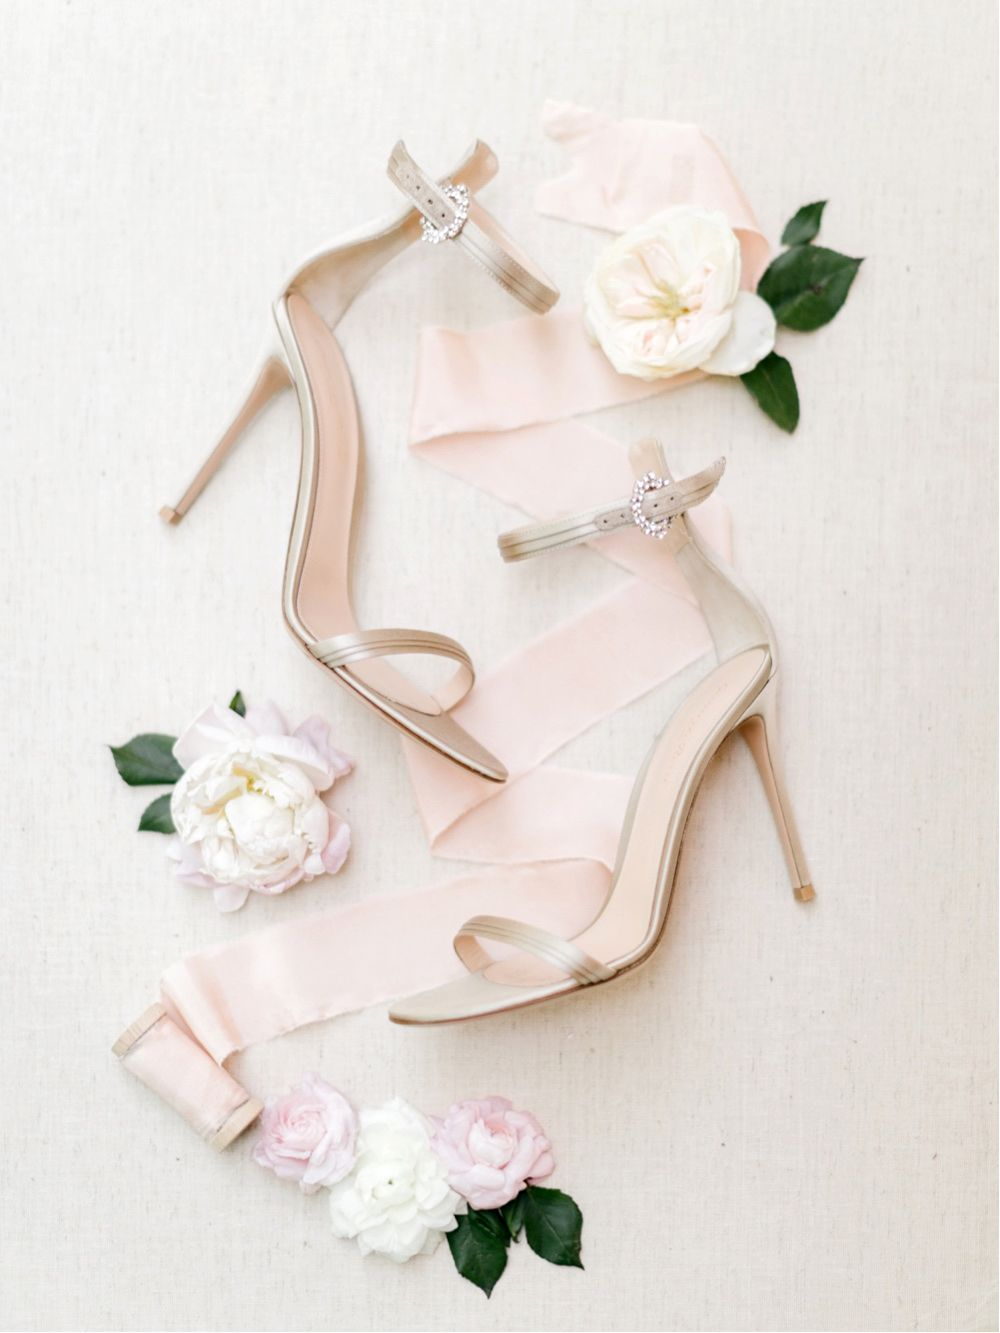 Wedding Shoes And Details Wedding Shoes Pink Wedding Shoes Elegant Wedding Shoes Simple Wedding Shoes